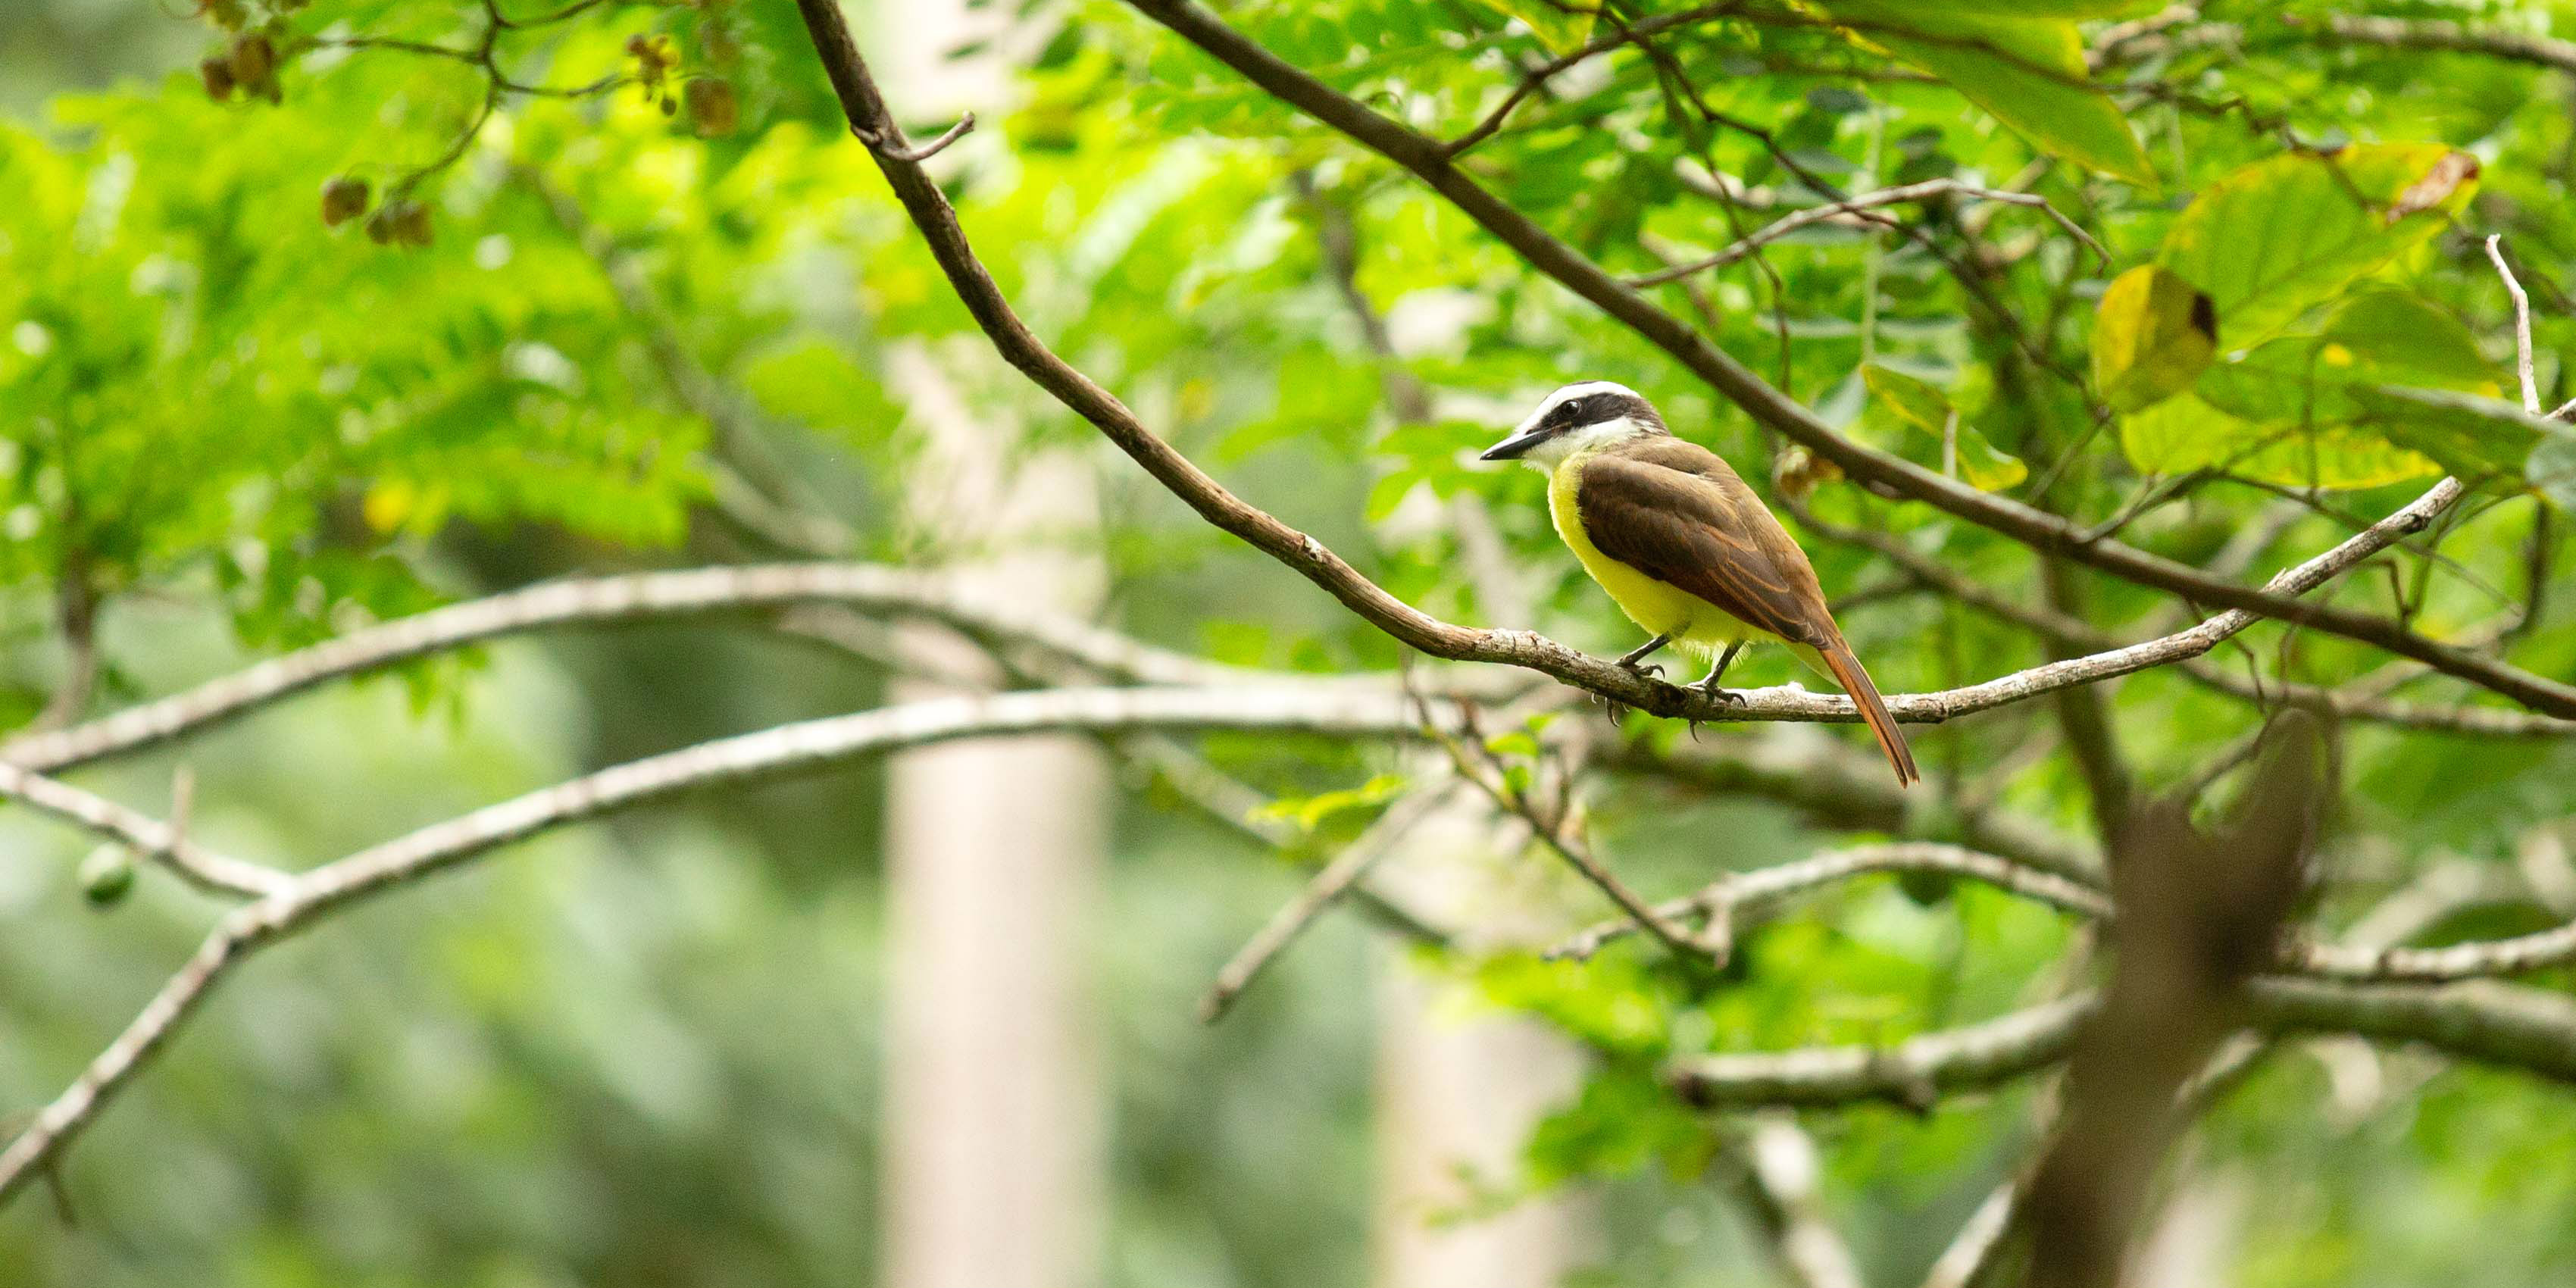 A bird perches on a branch in Costa Rica. While volunteering in Jalova, GVI participants might help to record data on the biodiversity in the area.